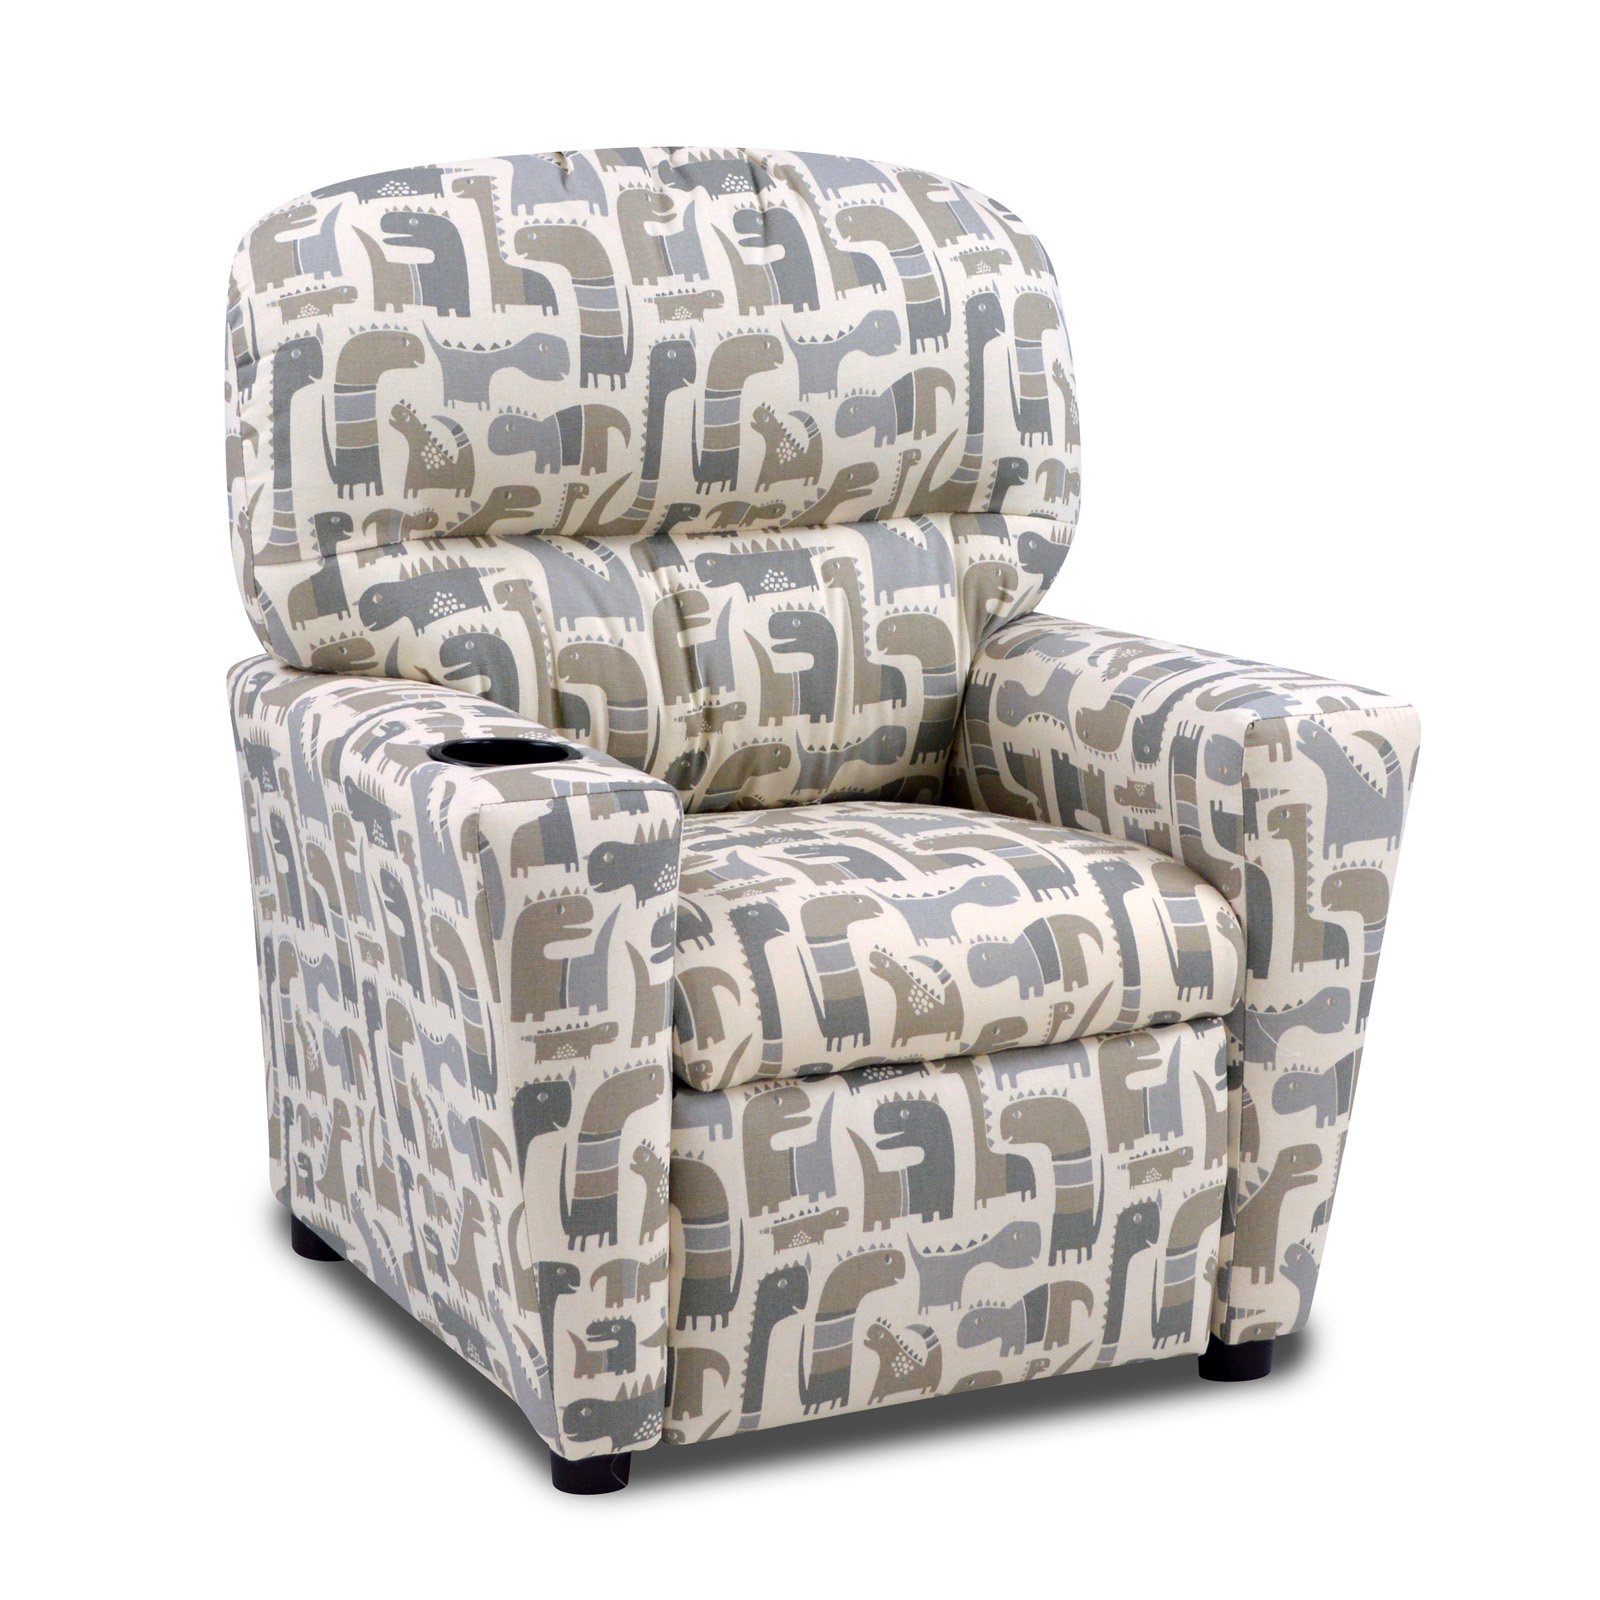 Kangaroo Trading Kids Monster Upholstered Recliner with Cup Holder